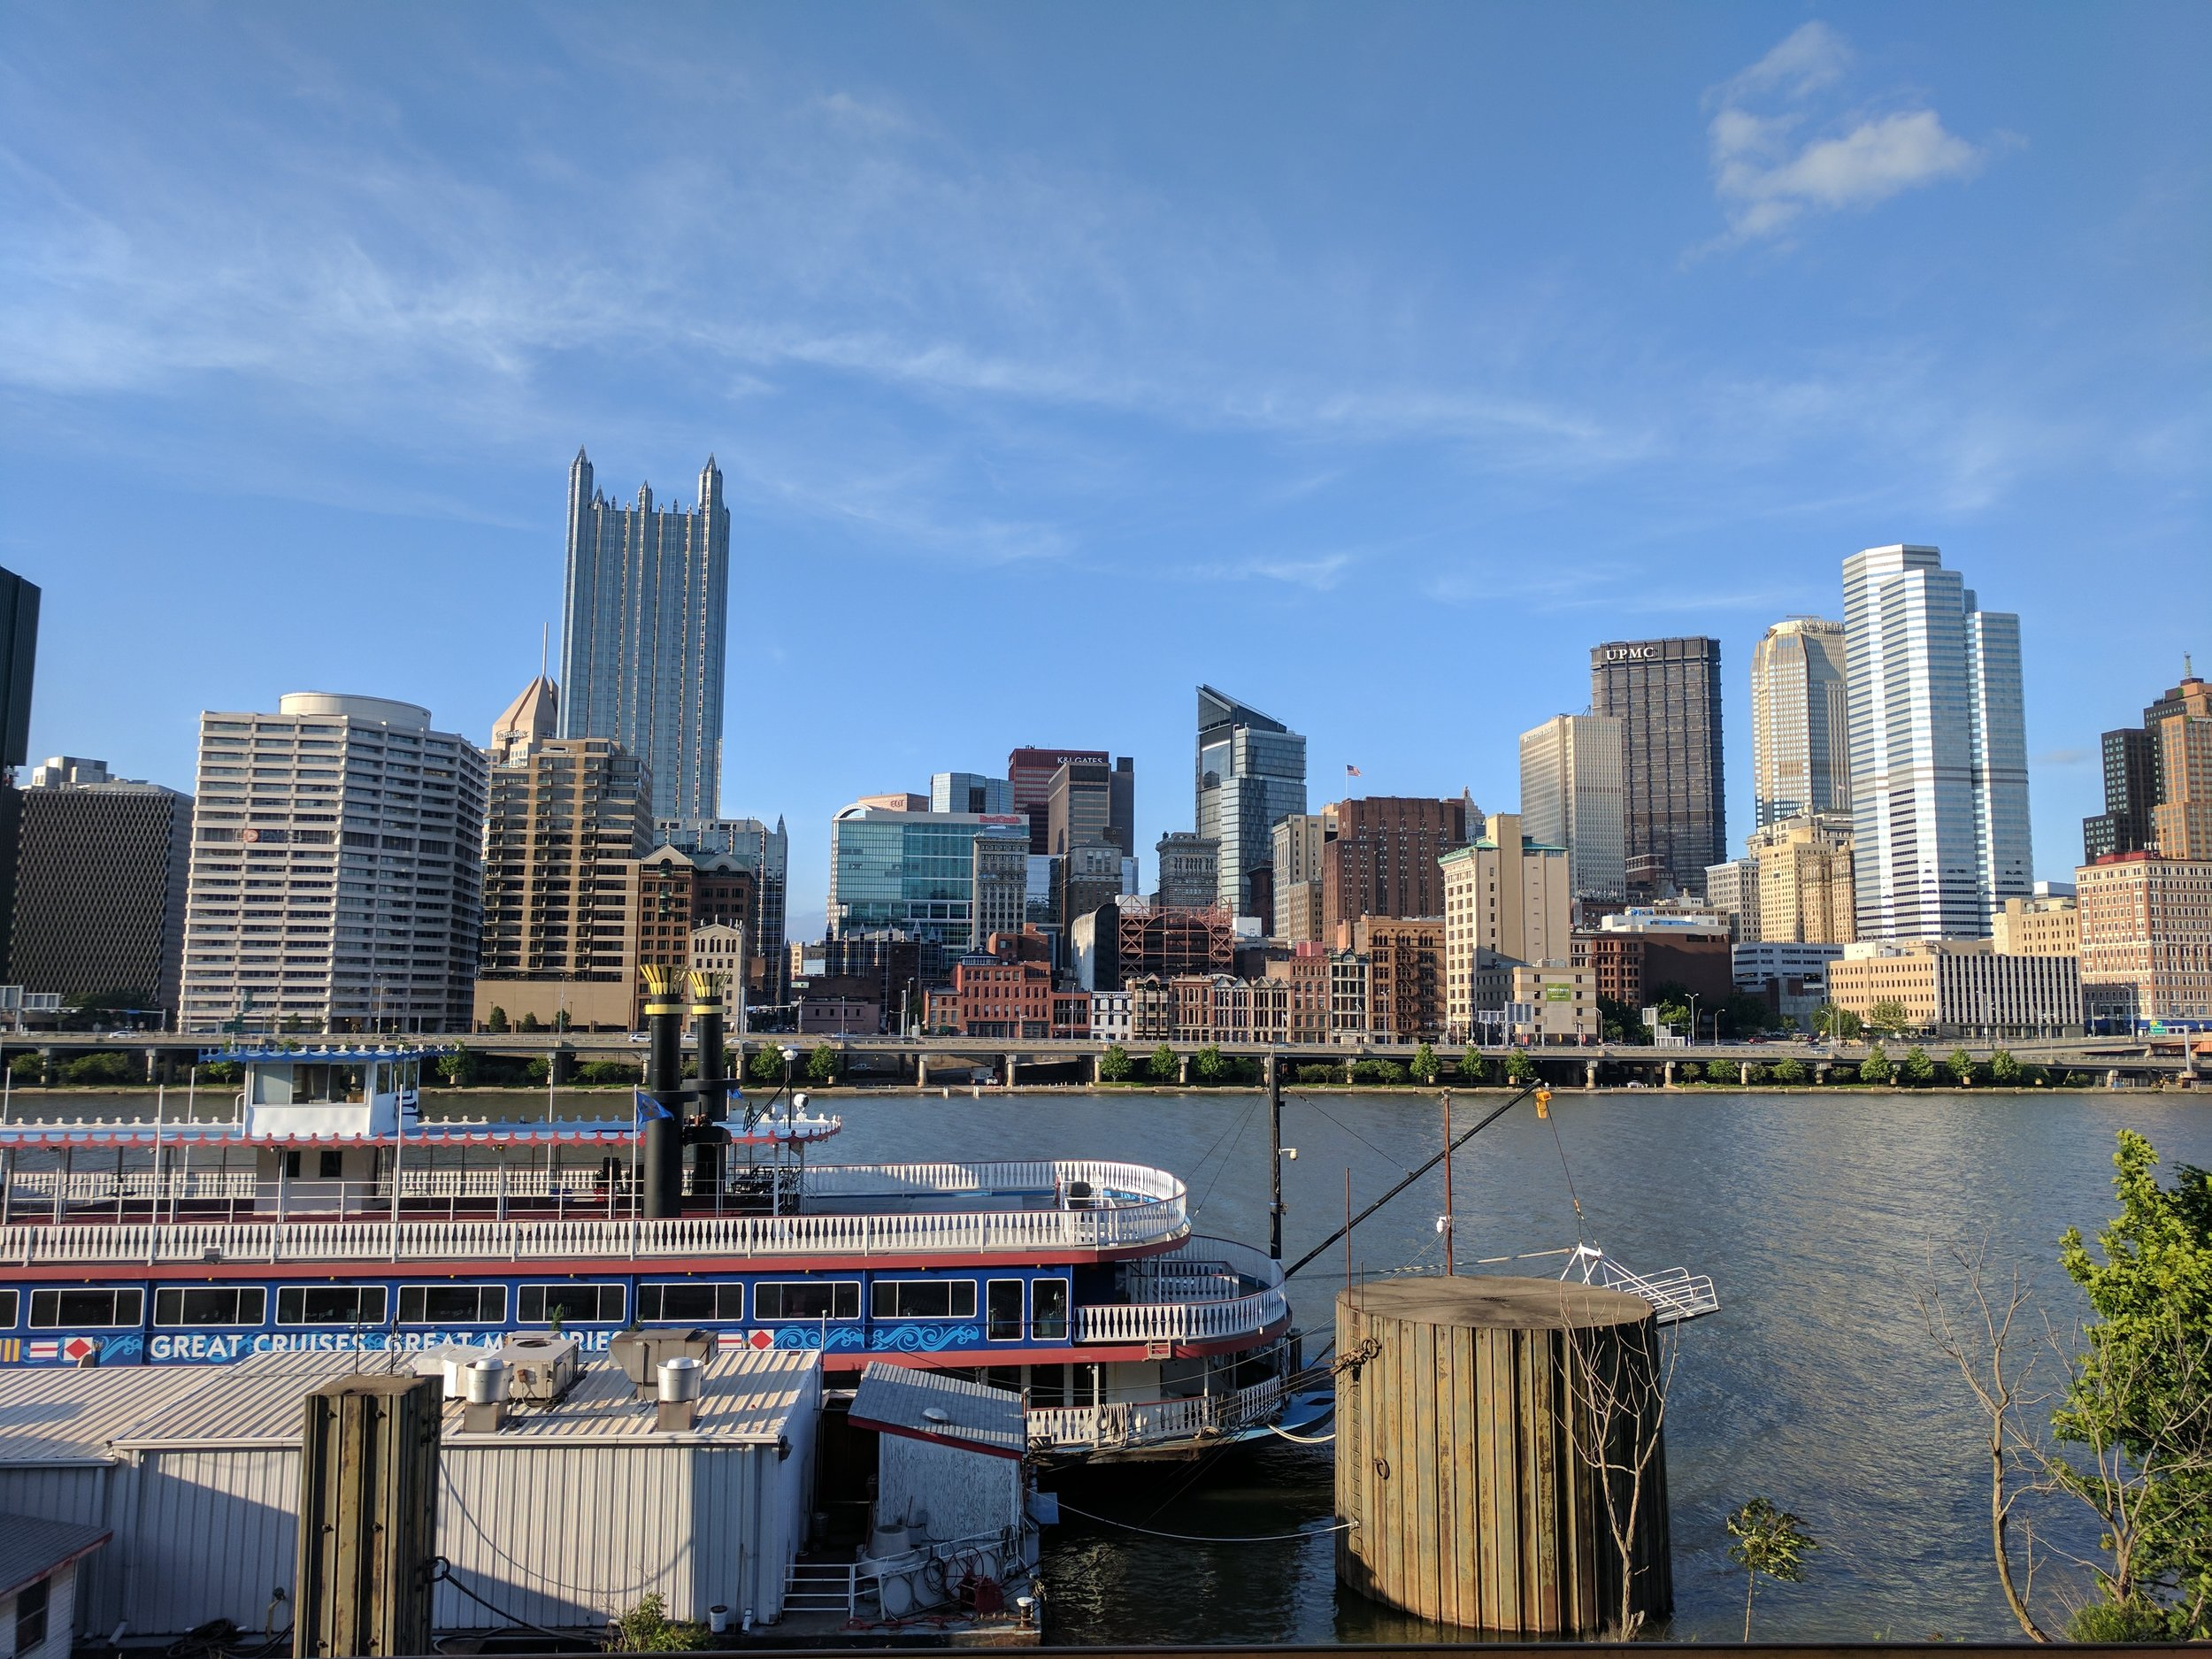 Looking North at the Pittsburgh skyline from Station Square.